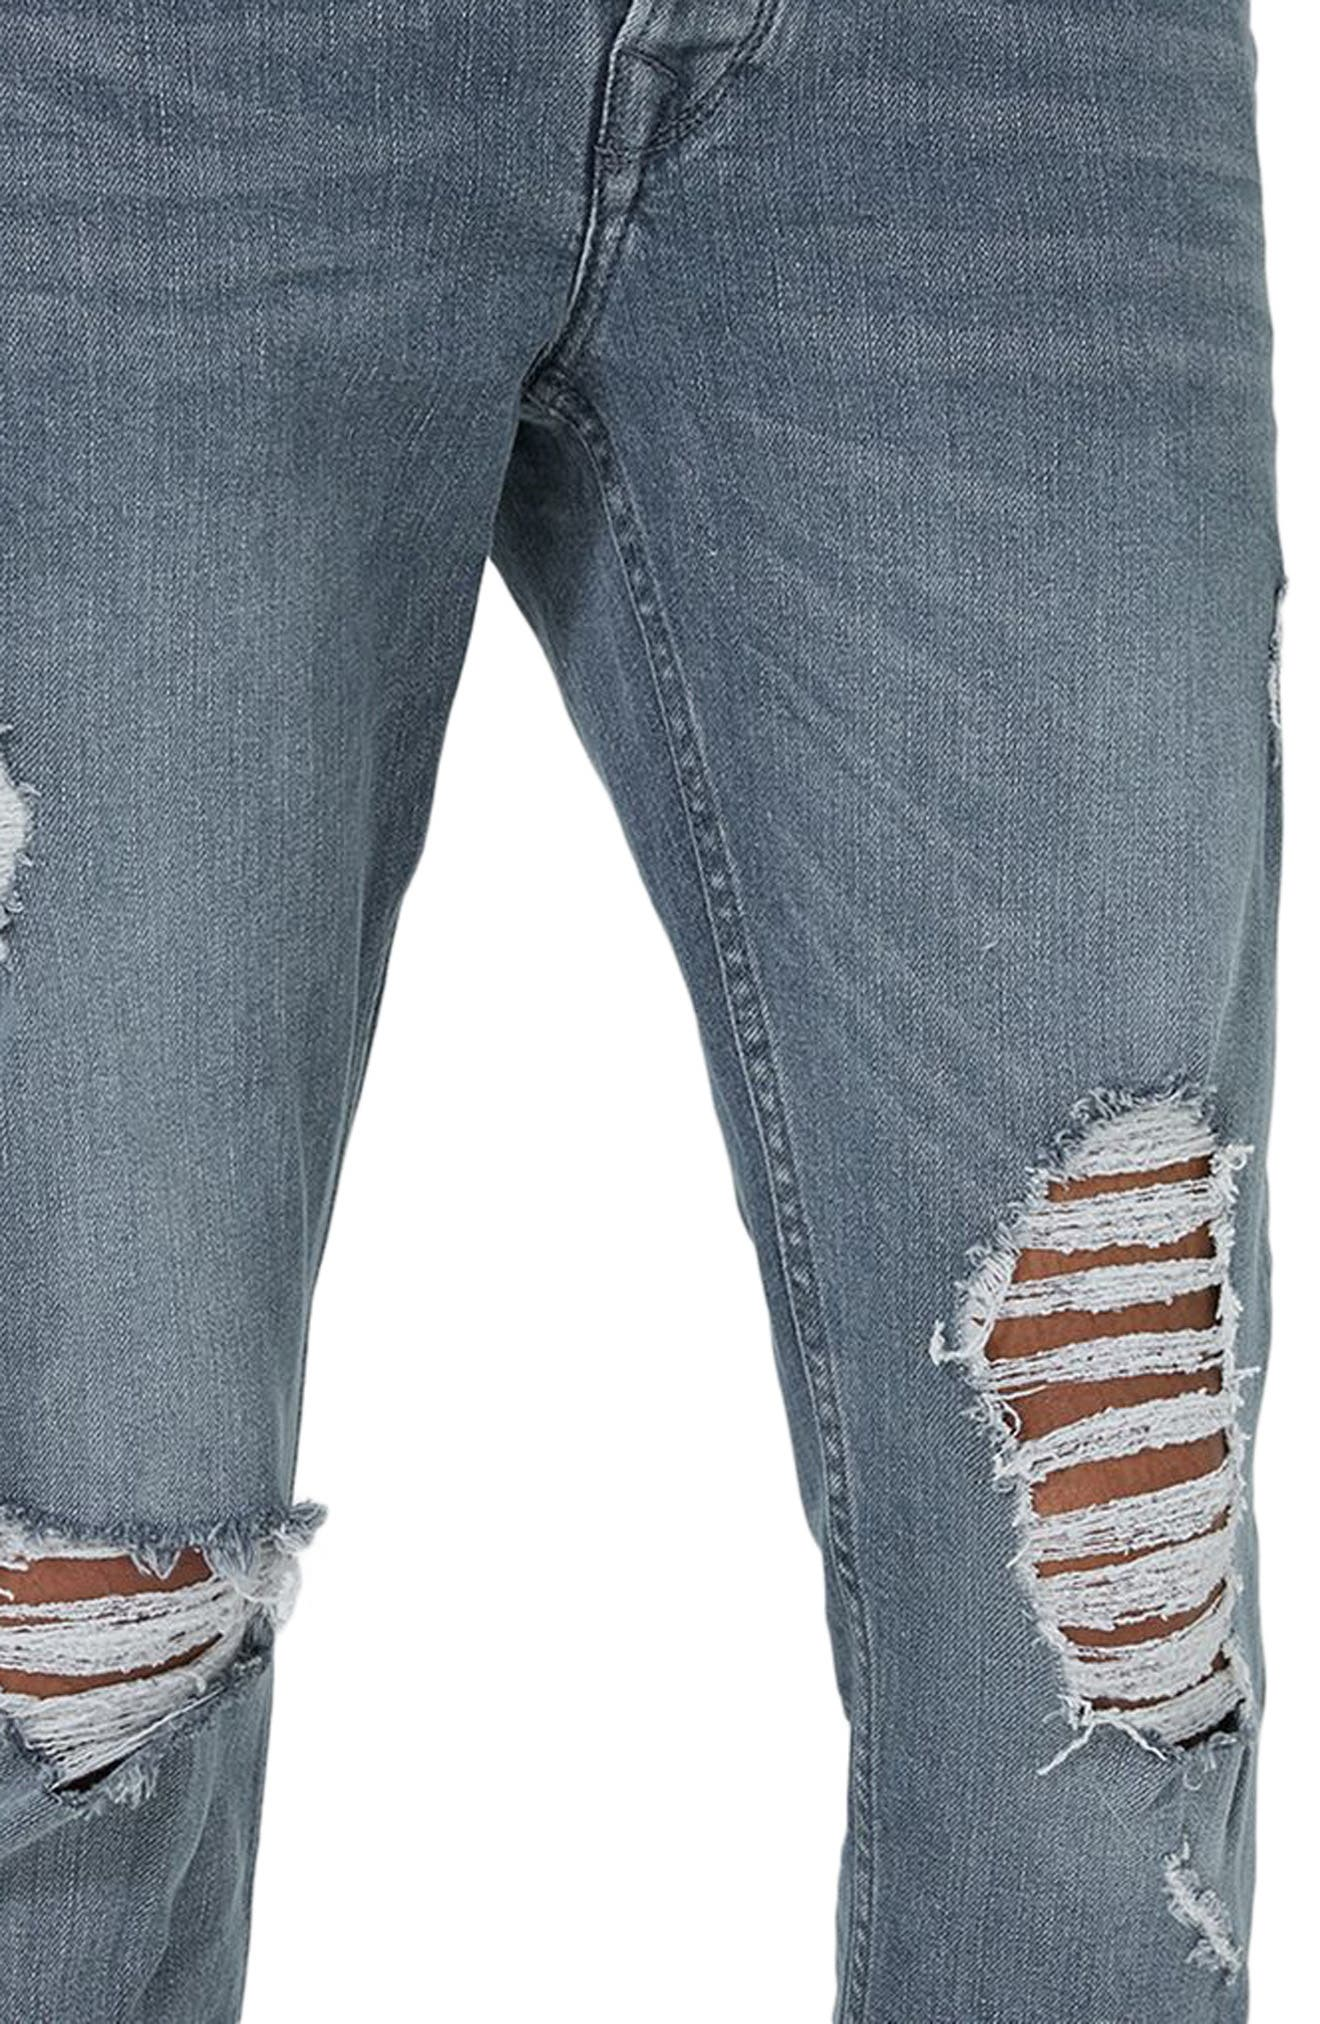 Extreme Rip Stretch Jeans,                             Alternate thumbnail 3, color,                             020